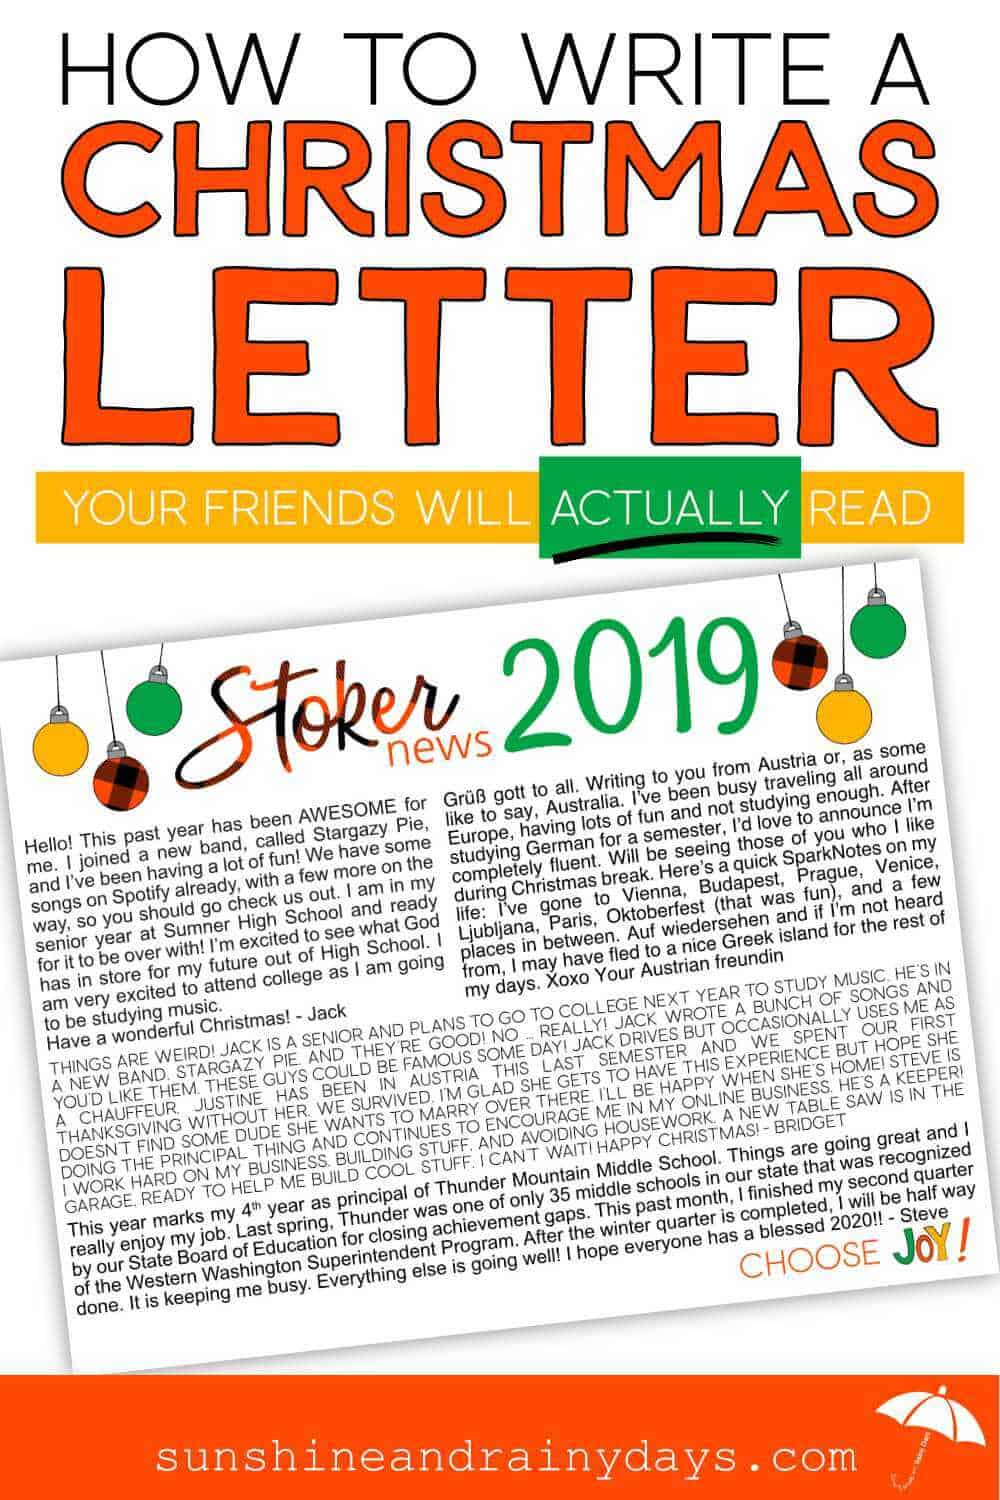 How To Write A Christmas Letter with a Christmas Newsletter sample.